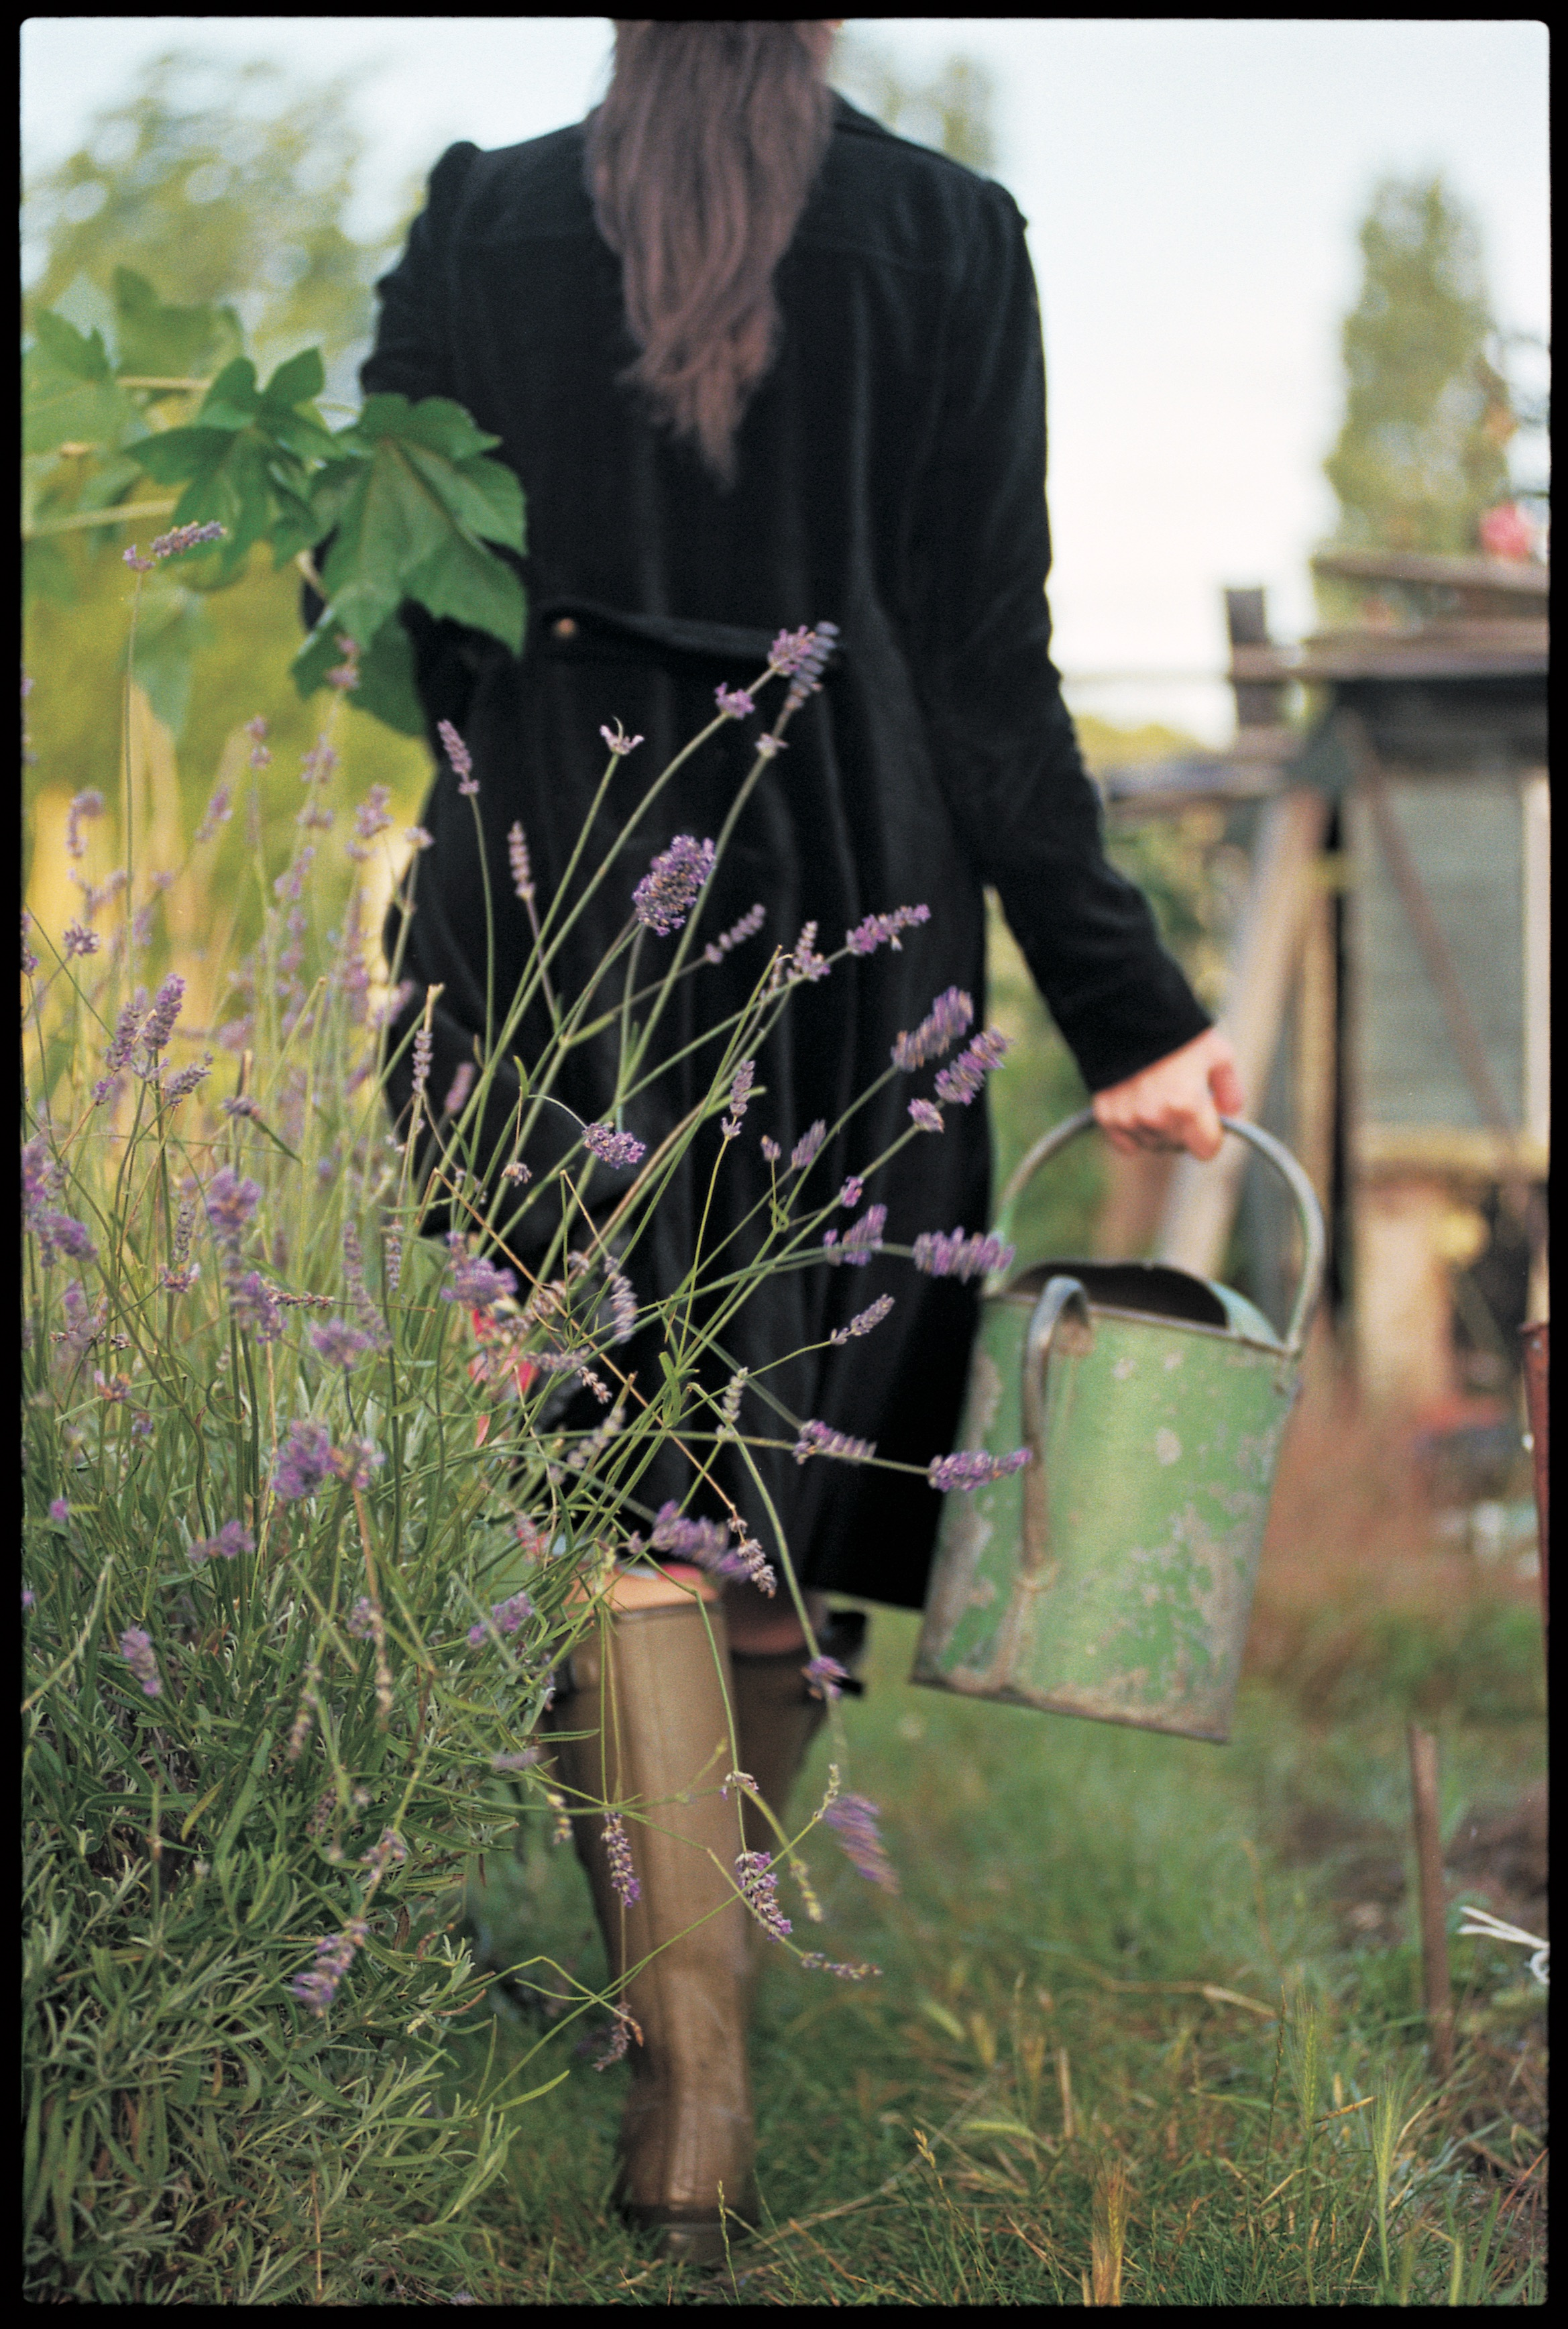 Me walking past some lavender that hasn't been chopped in a while! Image taken by Jill Mead